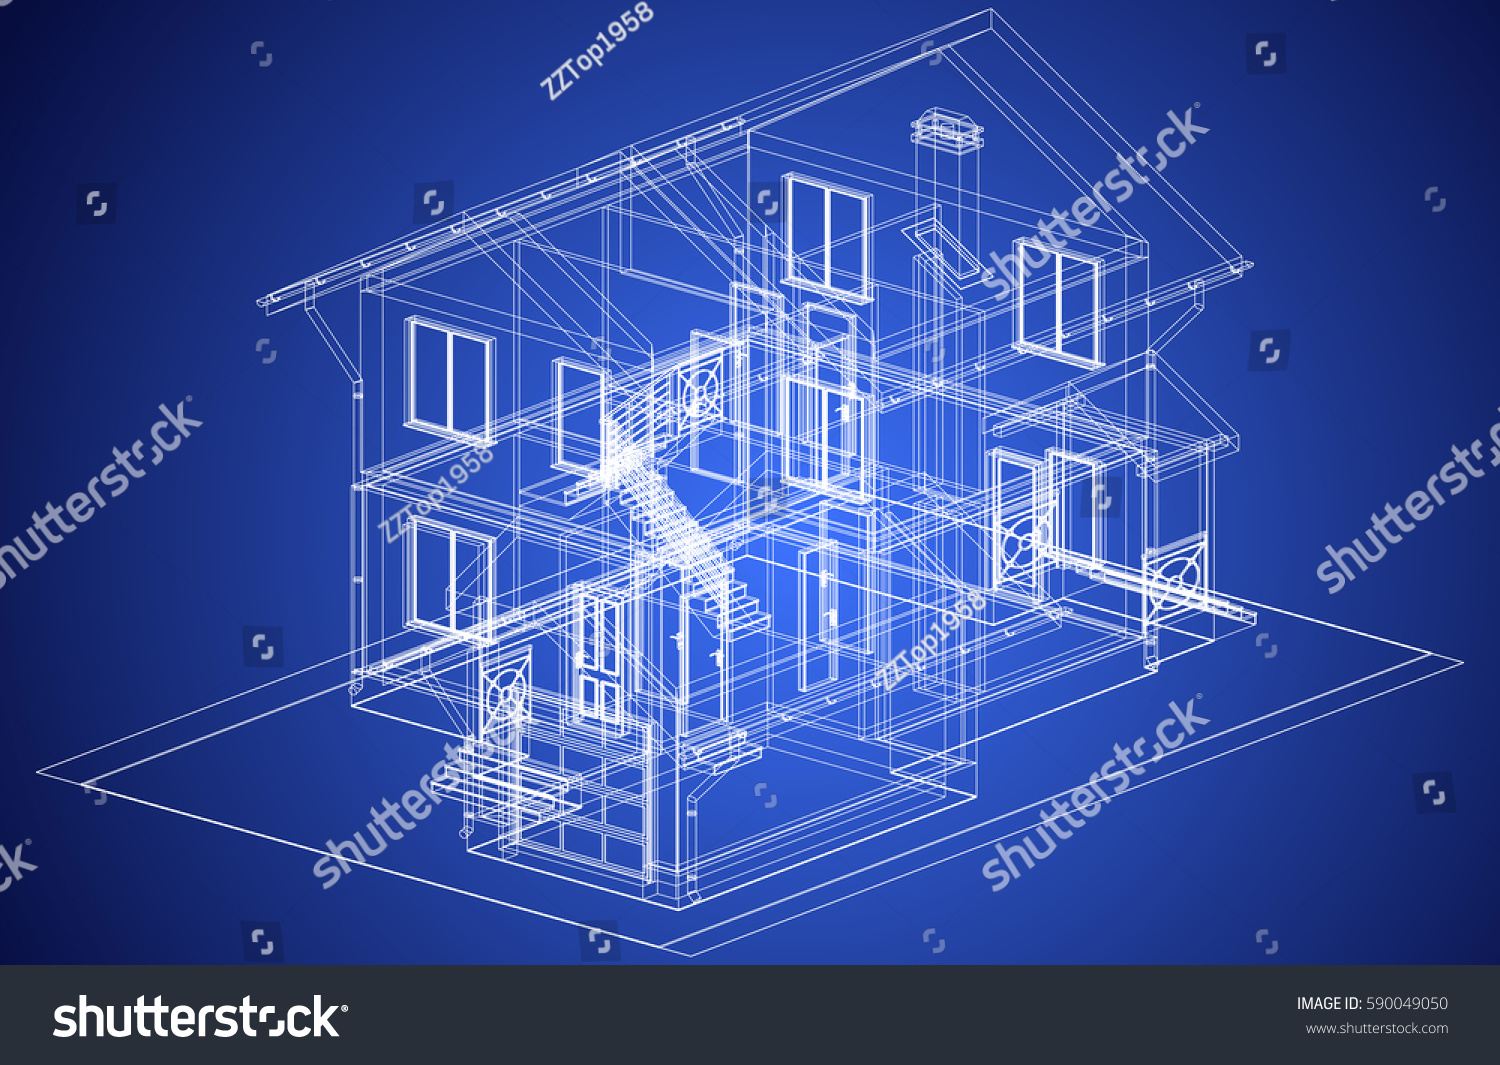 The Blueprint Of Architectural Design Of Half Timbered Residential House  With The Terrace. Vector